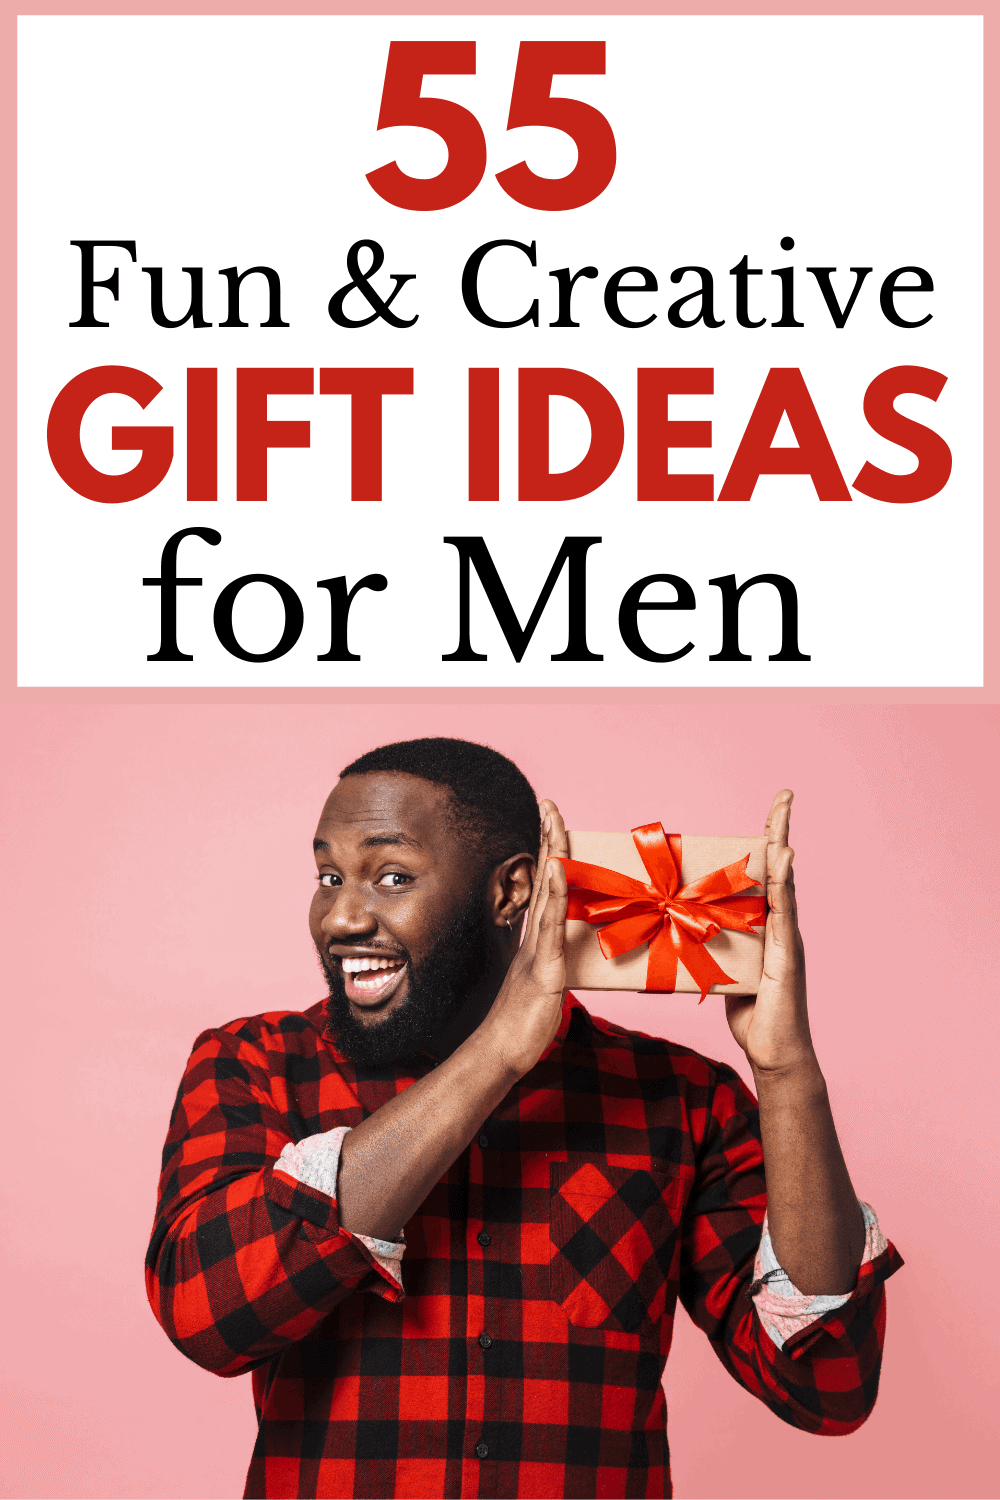 Gift ideas for guys! These creative, unique, and thoughtful gifts for men making shopping for your favorite guy easier than ever.